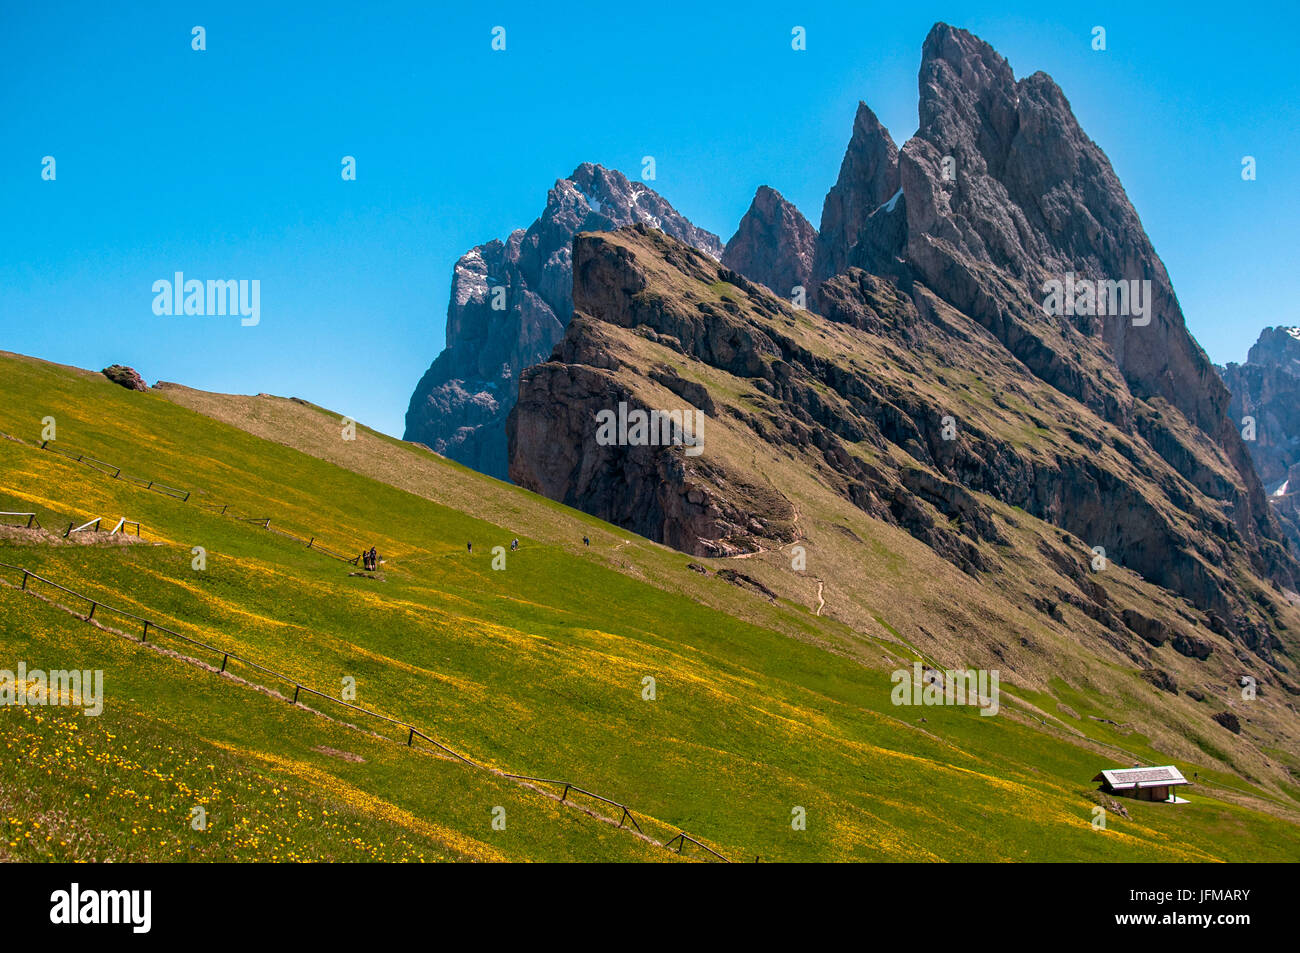 Landscape on the Seceda mountains with great views of the rocky peaks, Dolomiti, Trentino Alto Adige, Italy, - Stock Image